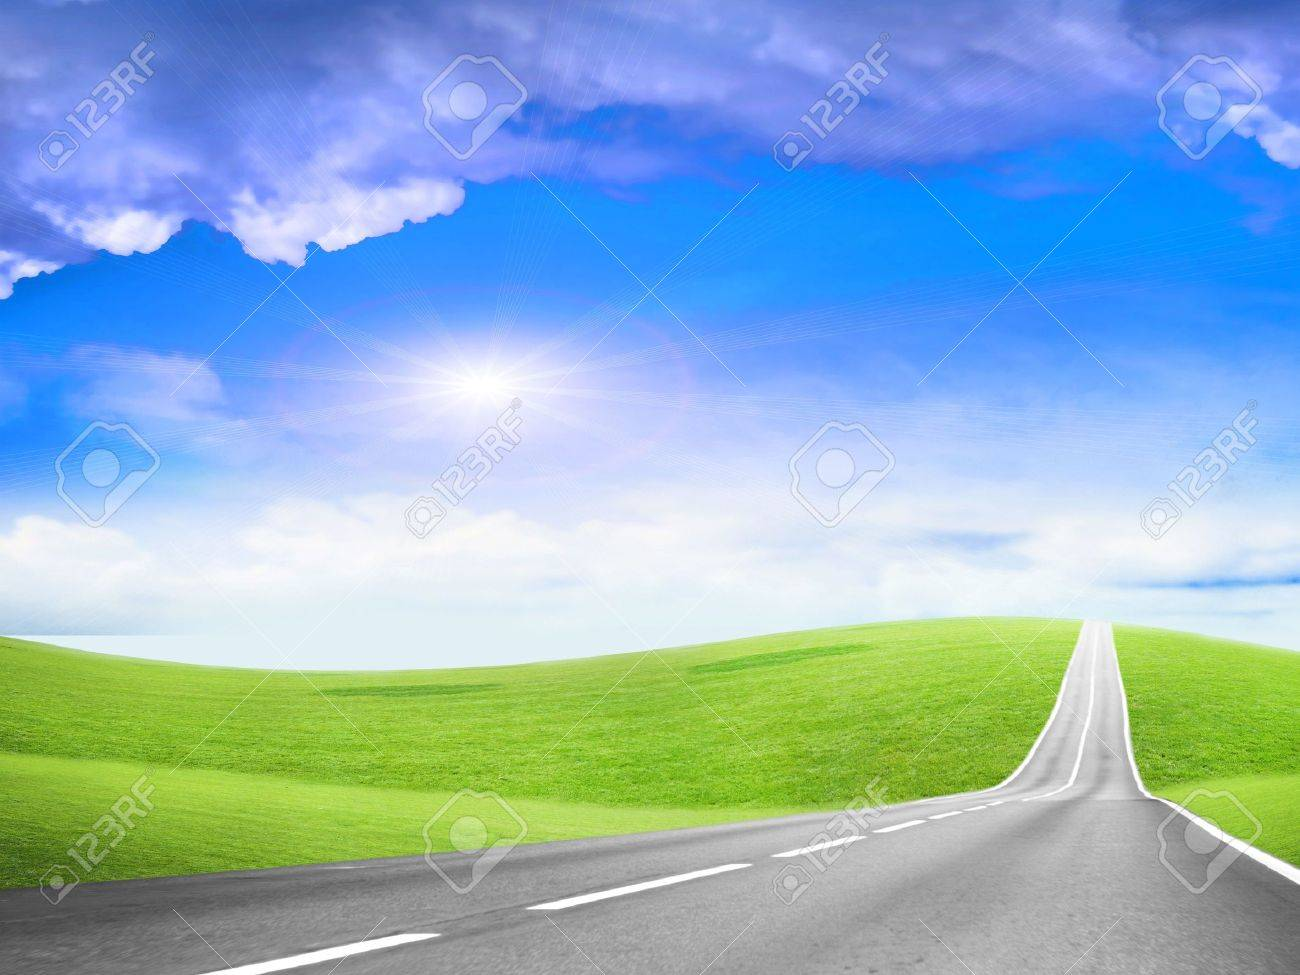 abstract scene of the road under blue sky Stock Photo - 4456494